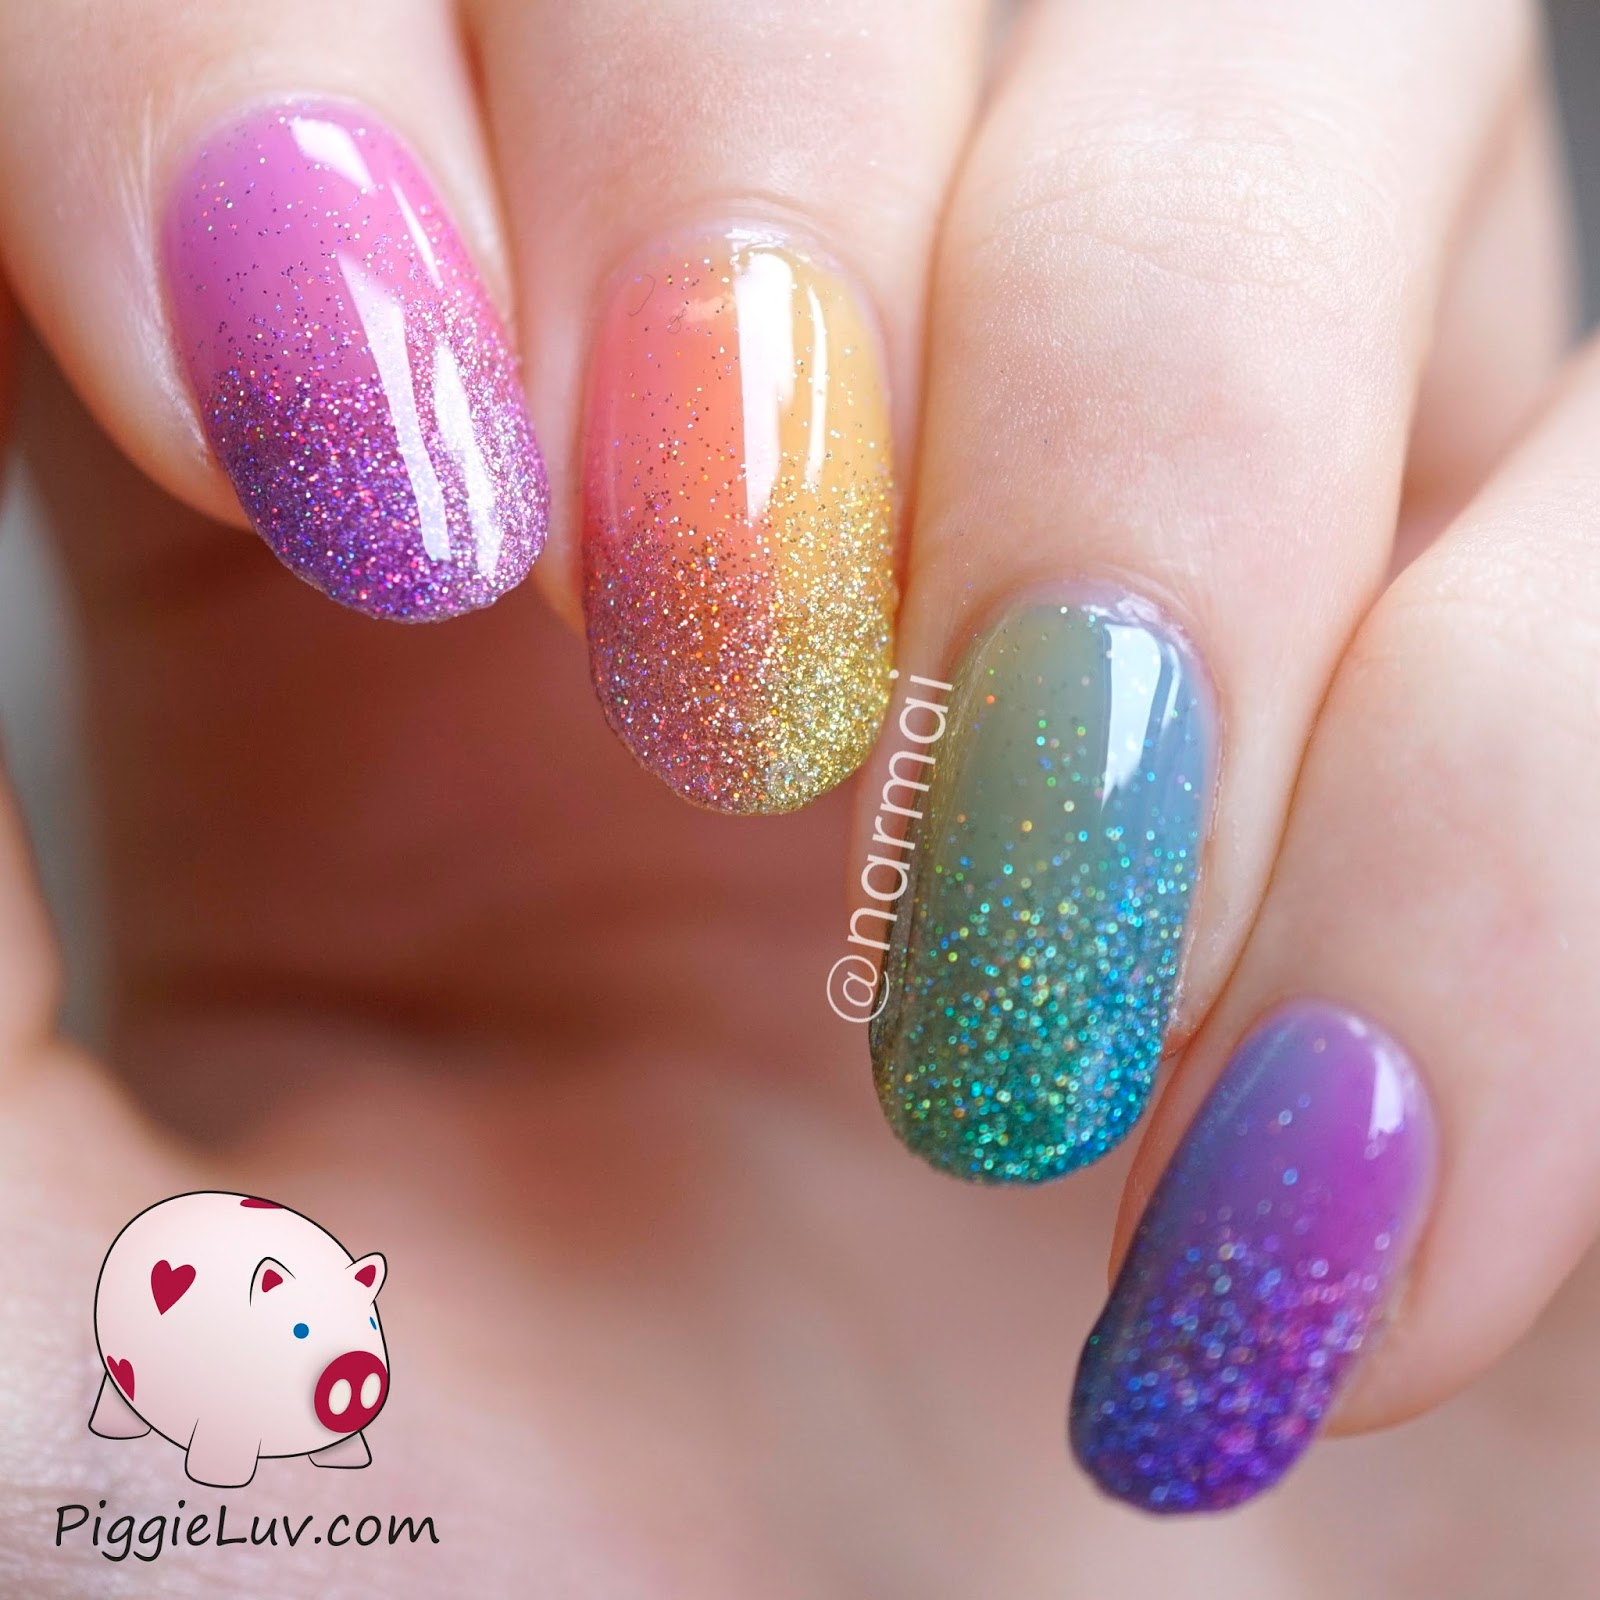 Piggieluv Double Gradient Glitter Rainbow Nail Art With Opi Sheer Tints